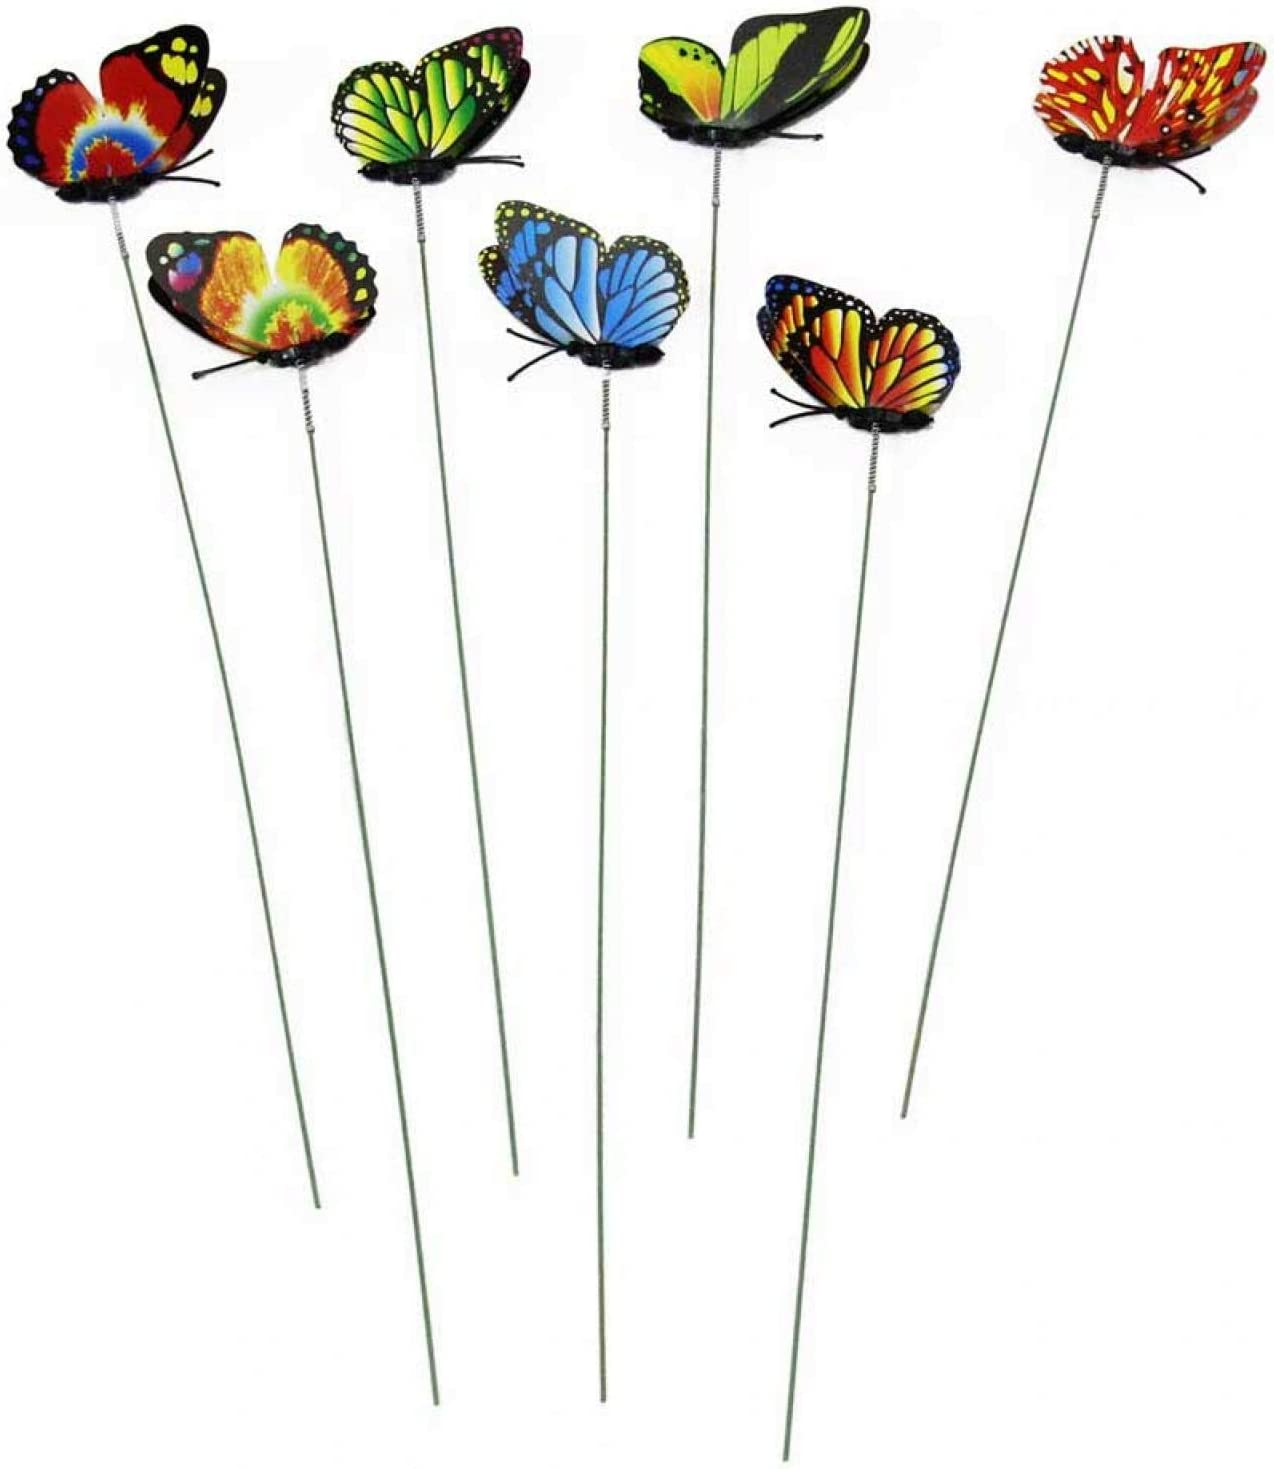 10PCS Garden Butterflies Stakes,Colourful Butterfly Stakes Ornaments Patio for Home Yard Garden Flower Outdoor Plant Party Supplies Decorations